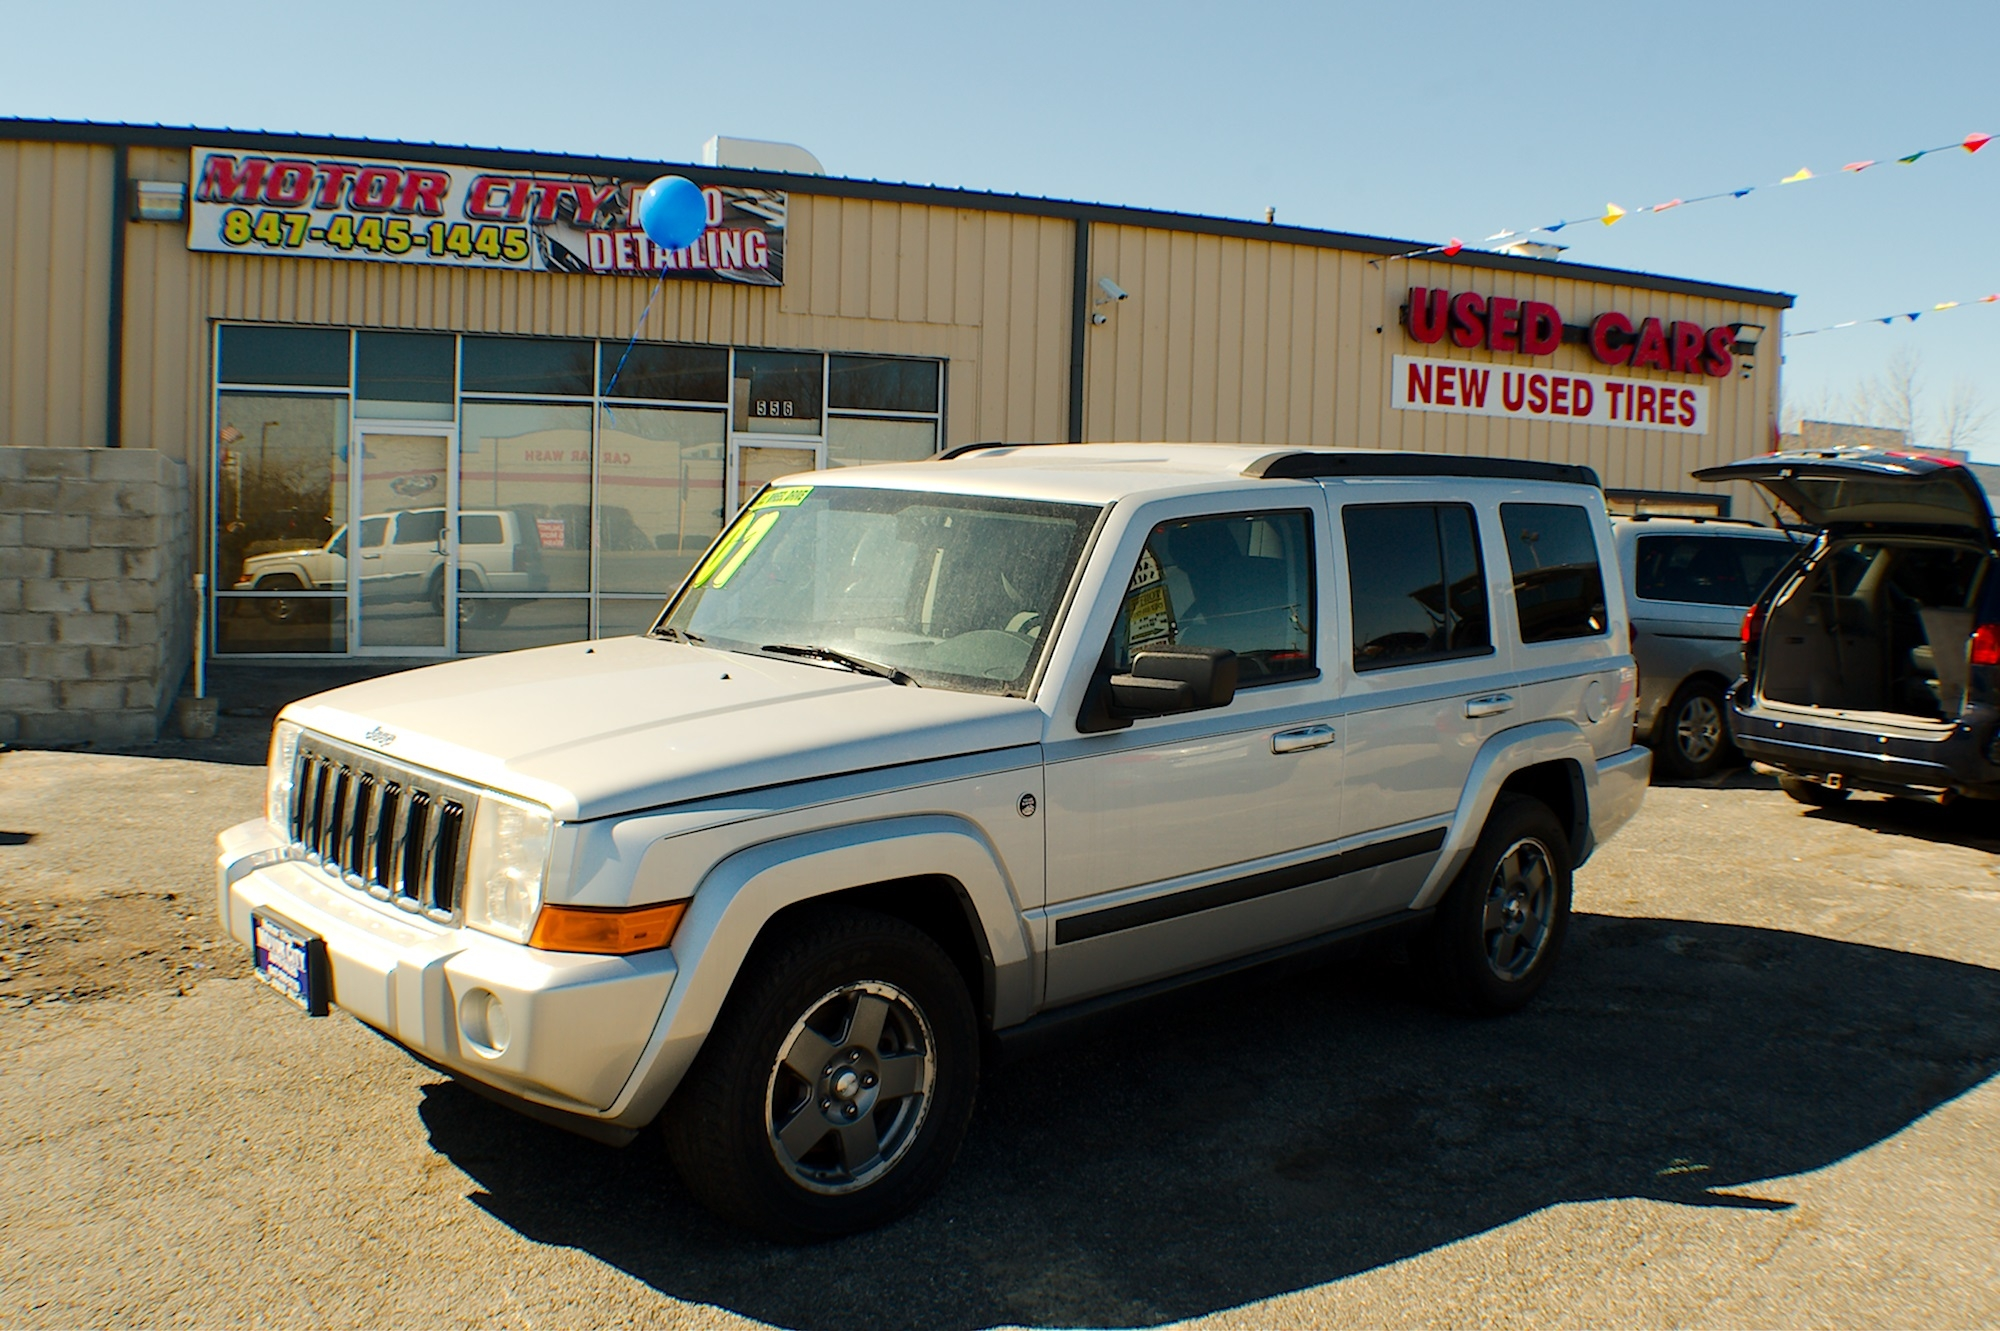 2007 Jeep Commander 4x4 Silver Flex fuel SUV Sale Antioch Zion Waukegan Lake County Illinois